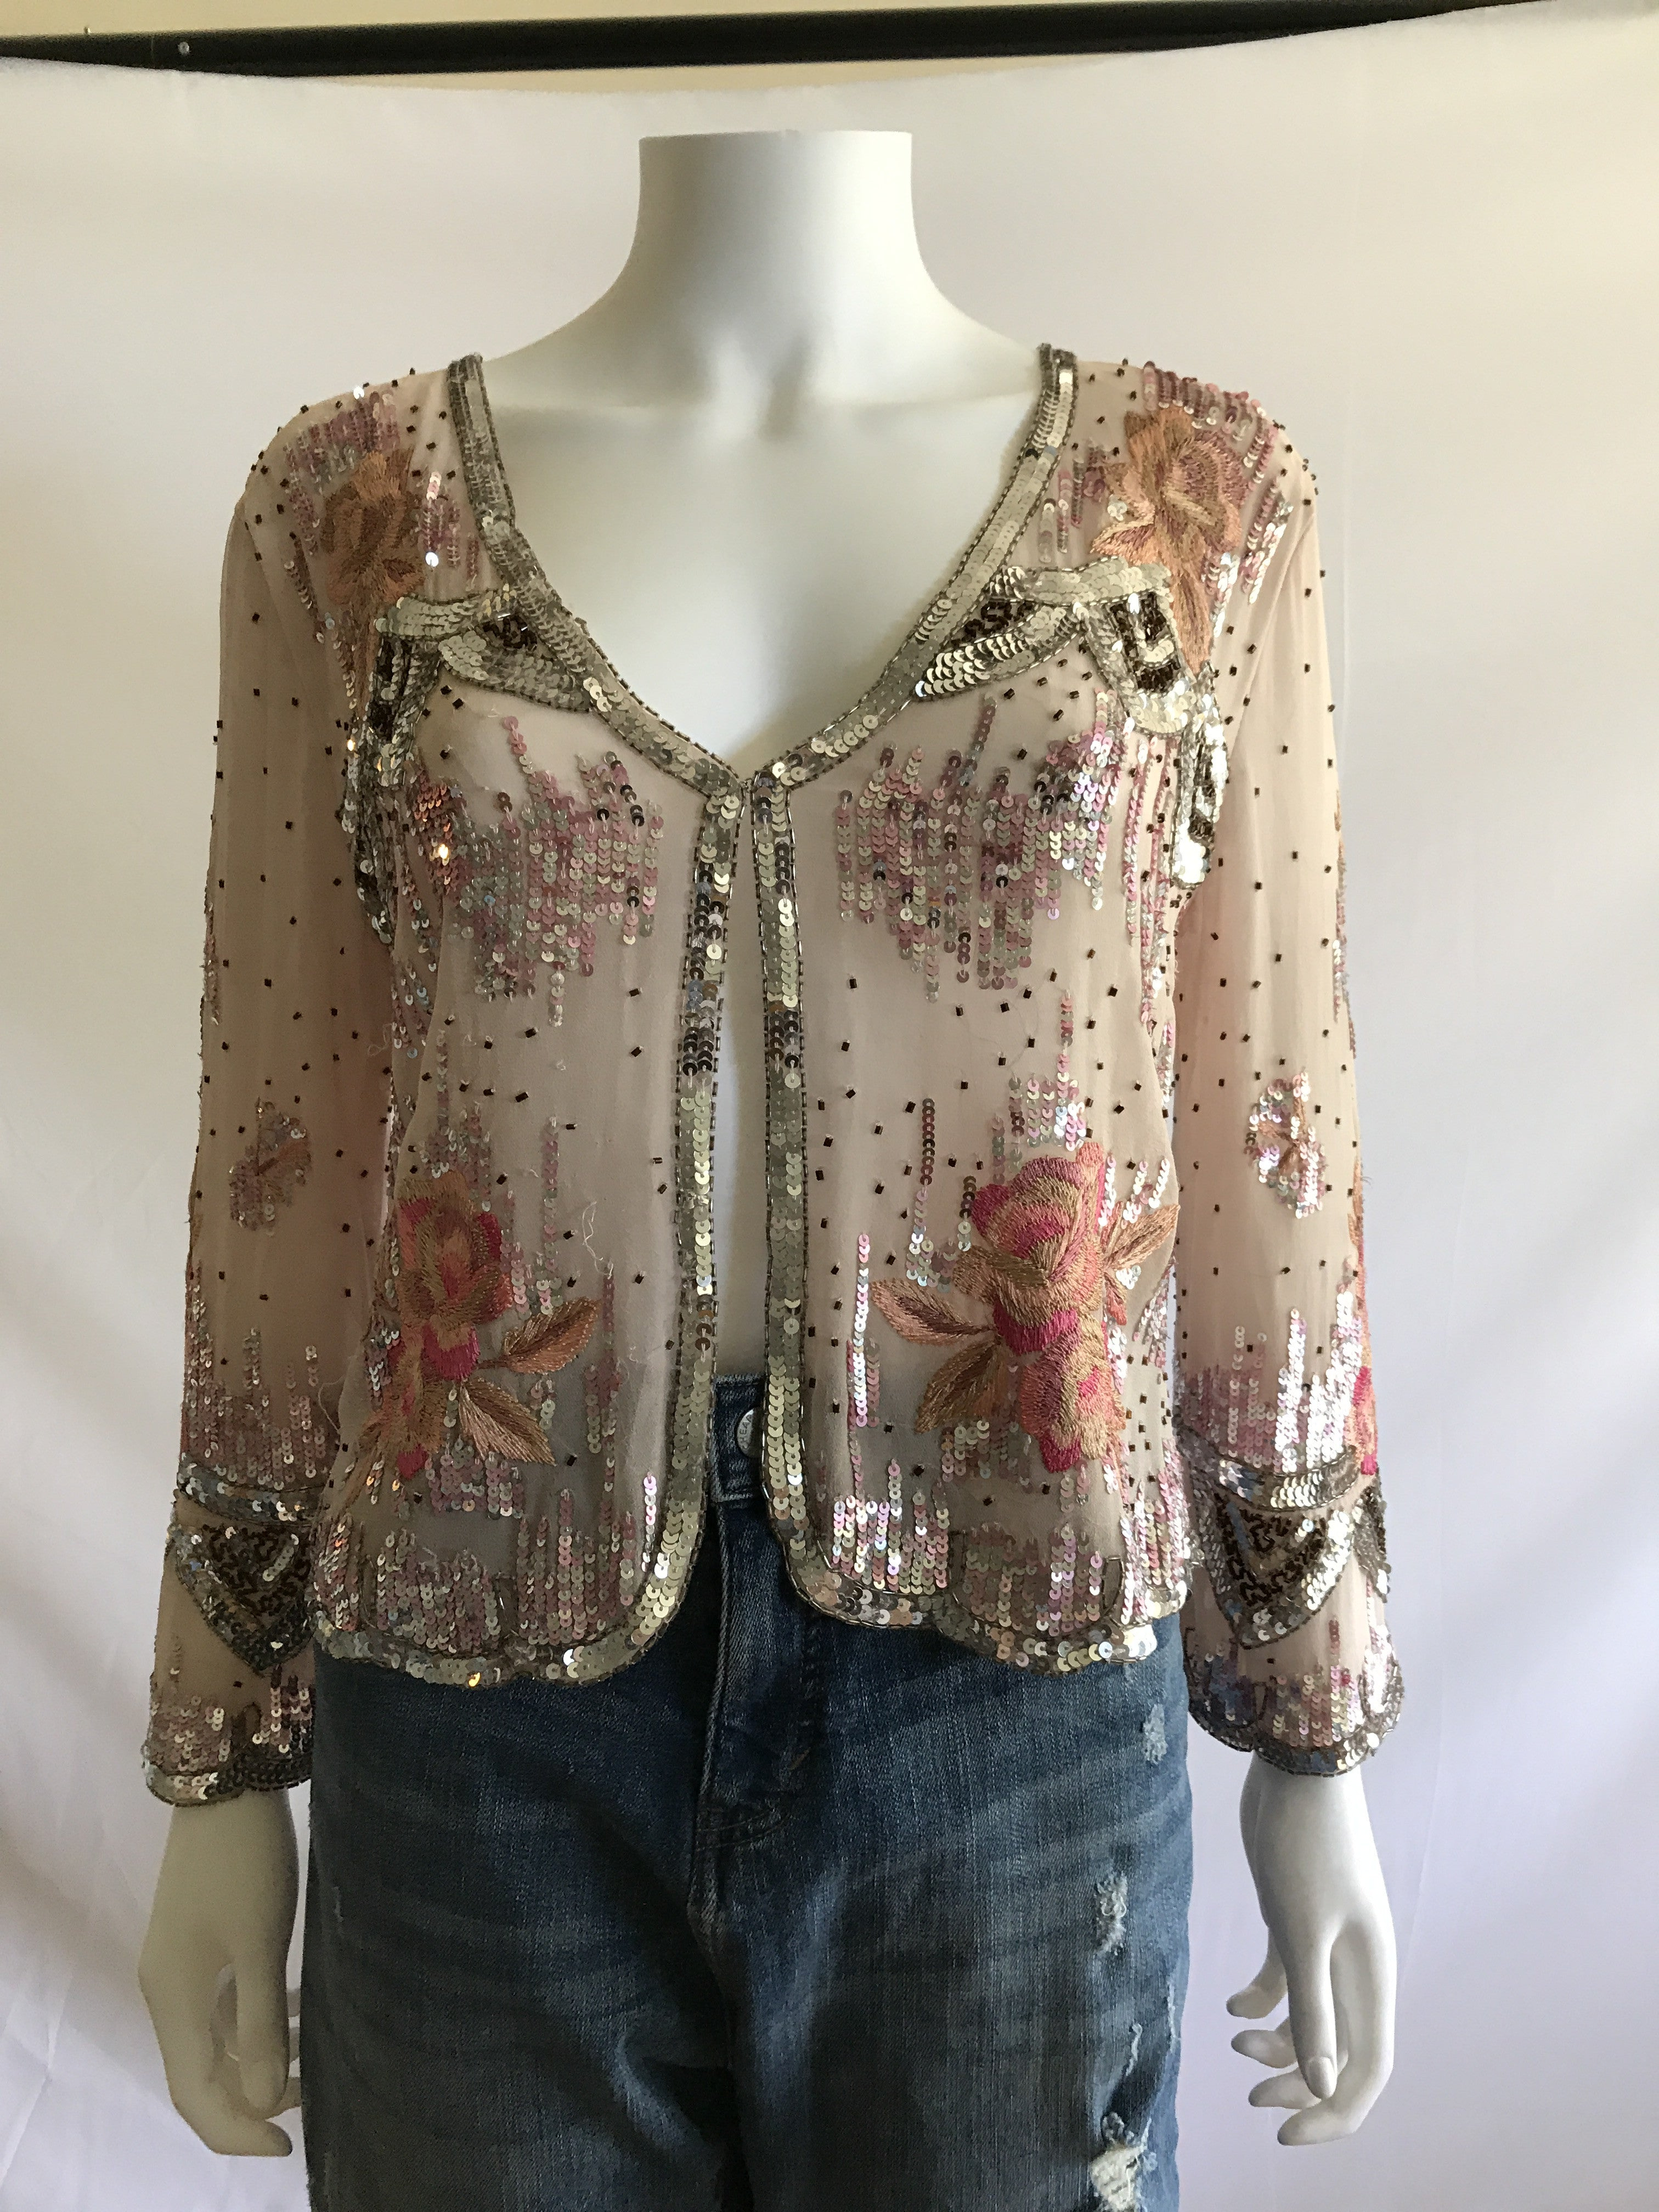 Vintage 70s Jewel and Beads Adorned Embroidered Pink Jackets Cardigans - BAD HABIT